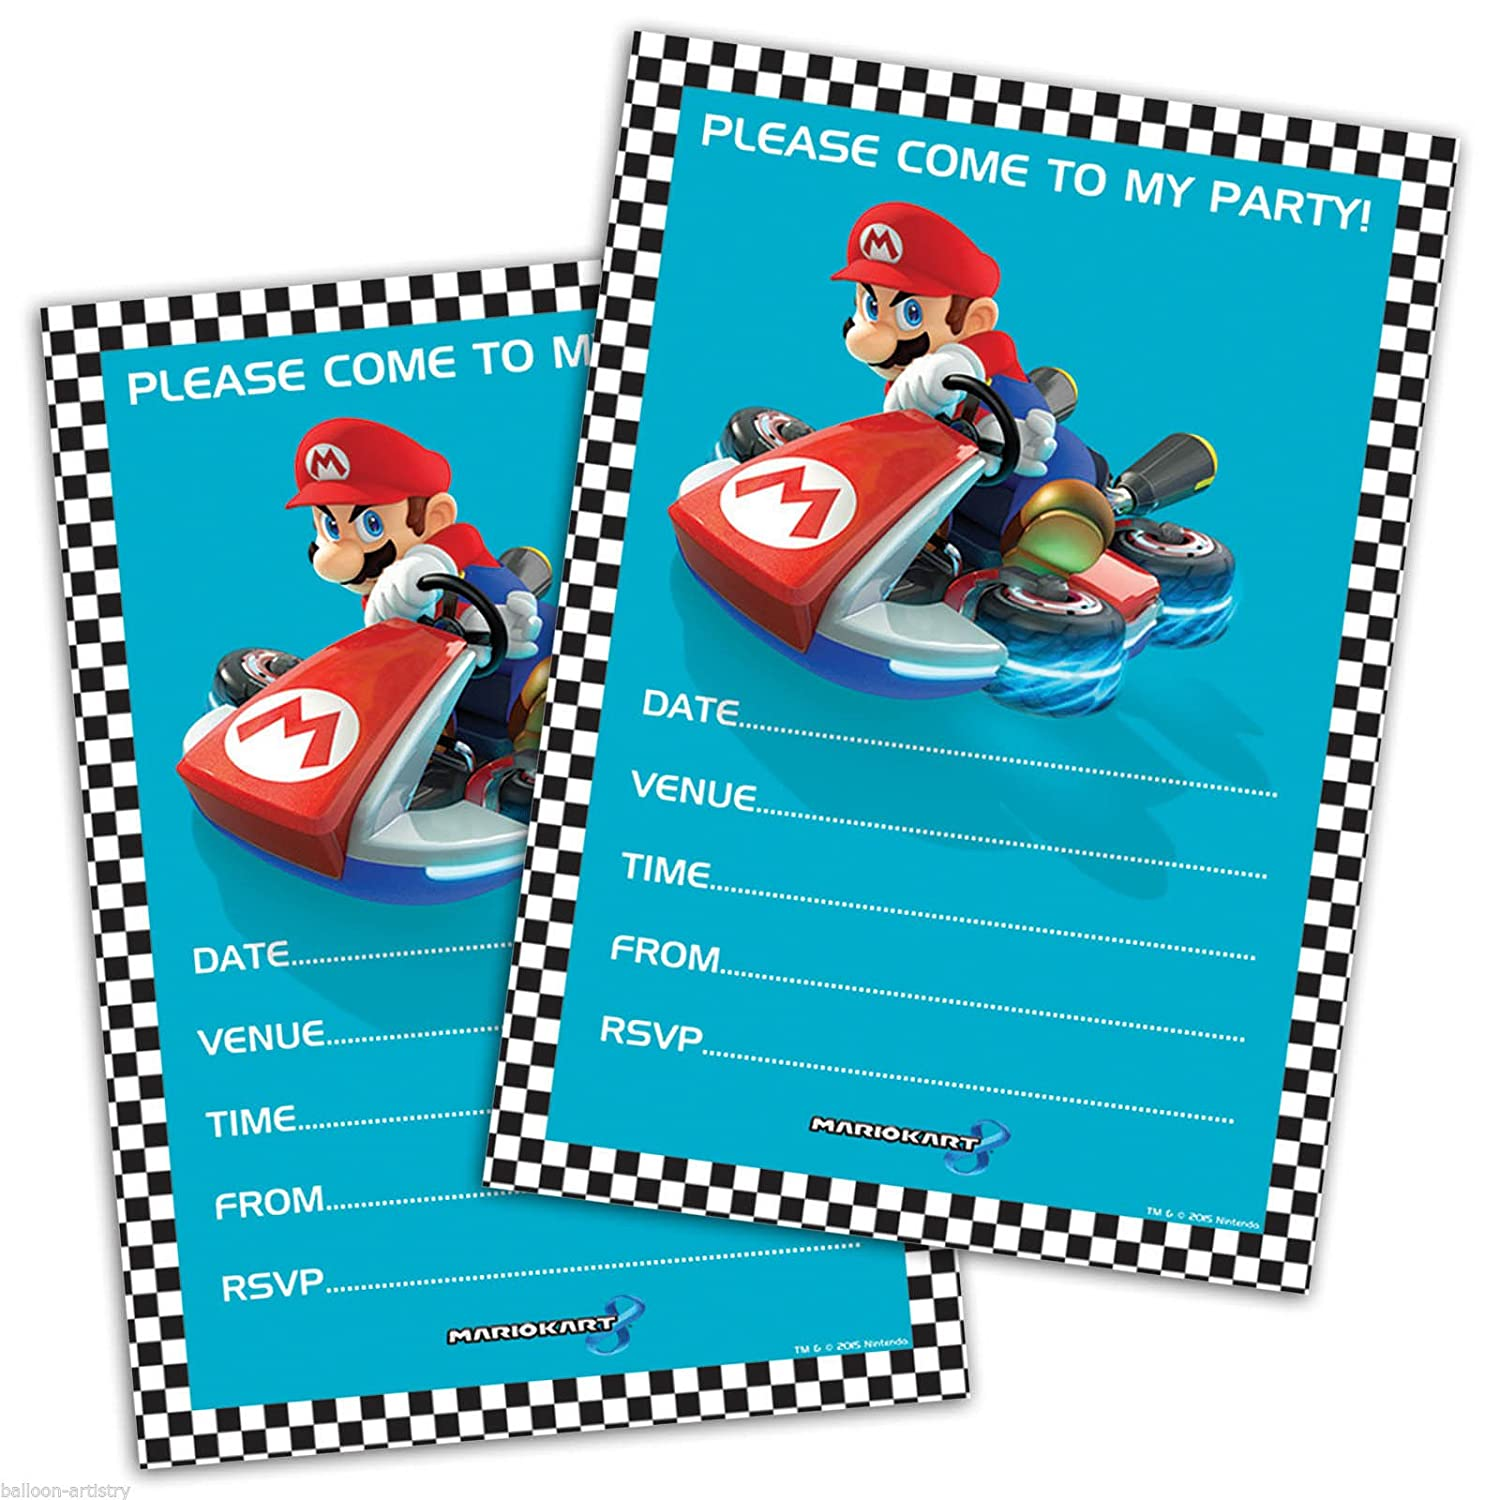 20 party invitations mario kart birthday party by nintendo 20 party invitations mario kart birthday party by nintendo amazon toys games monicamarmolfo Gallery